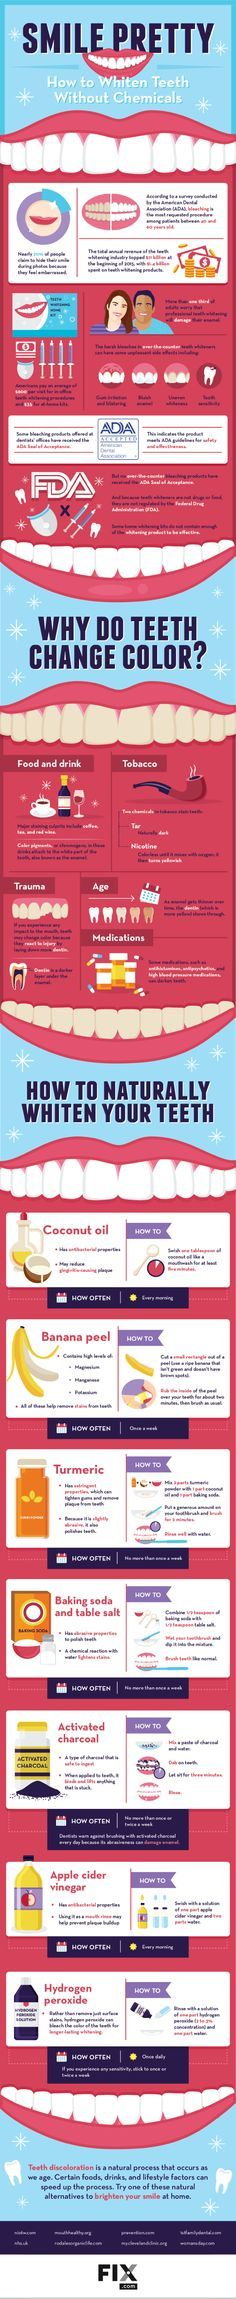 [Infographic] 7 ways you can naturally whiten your #teeth + how often you should do it! #teethwhitening #oralcare